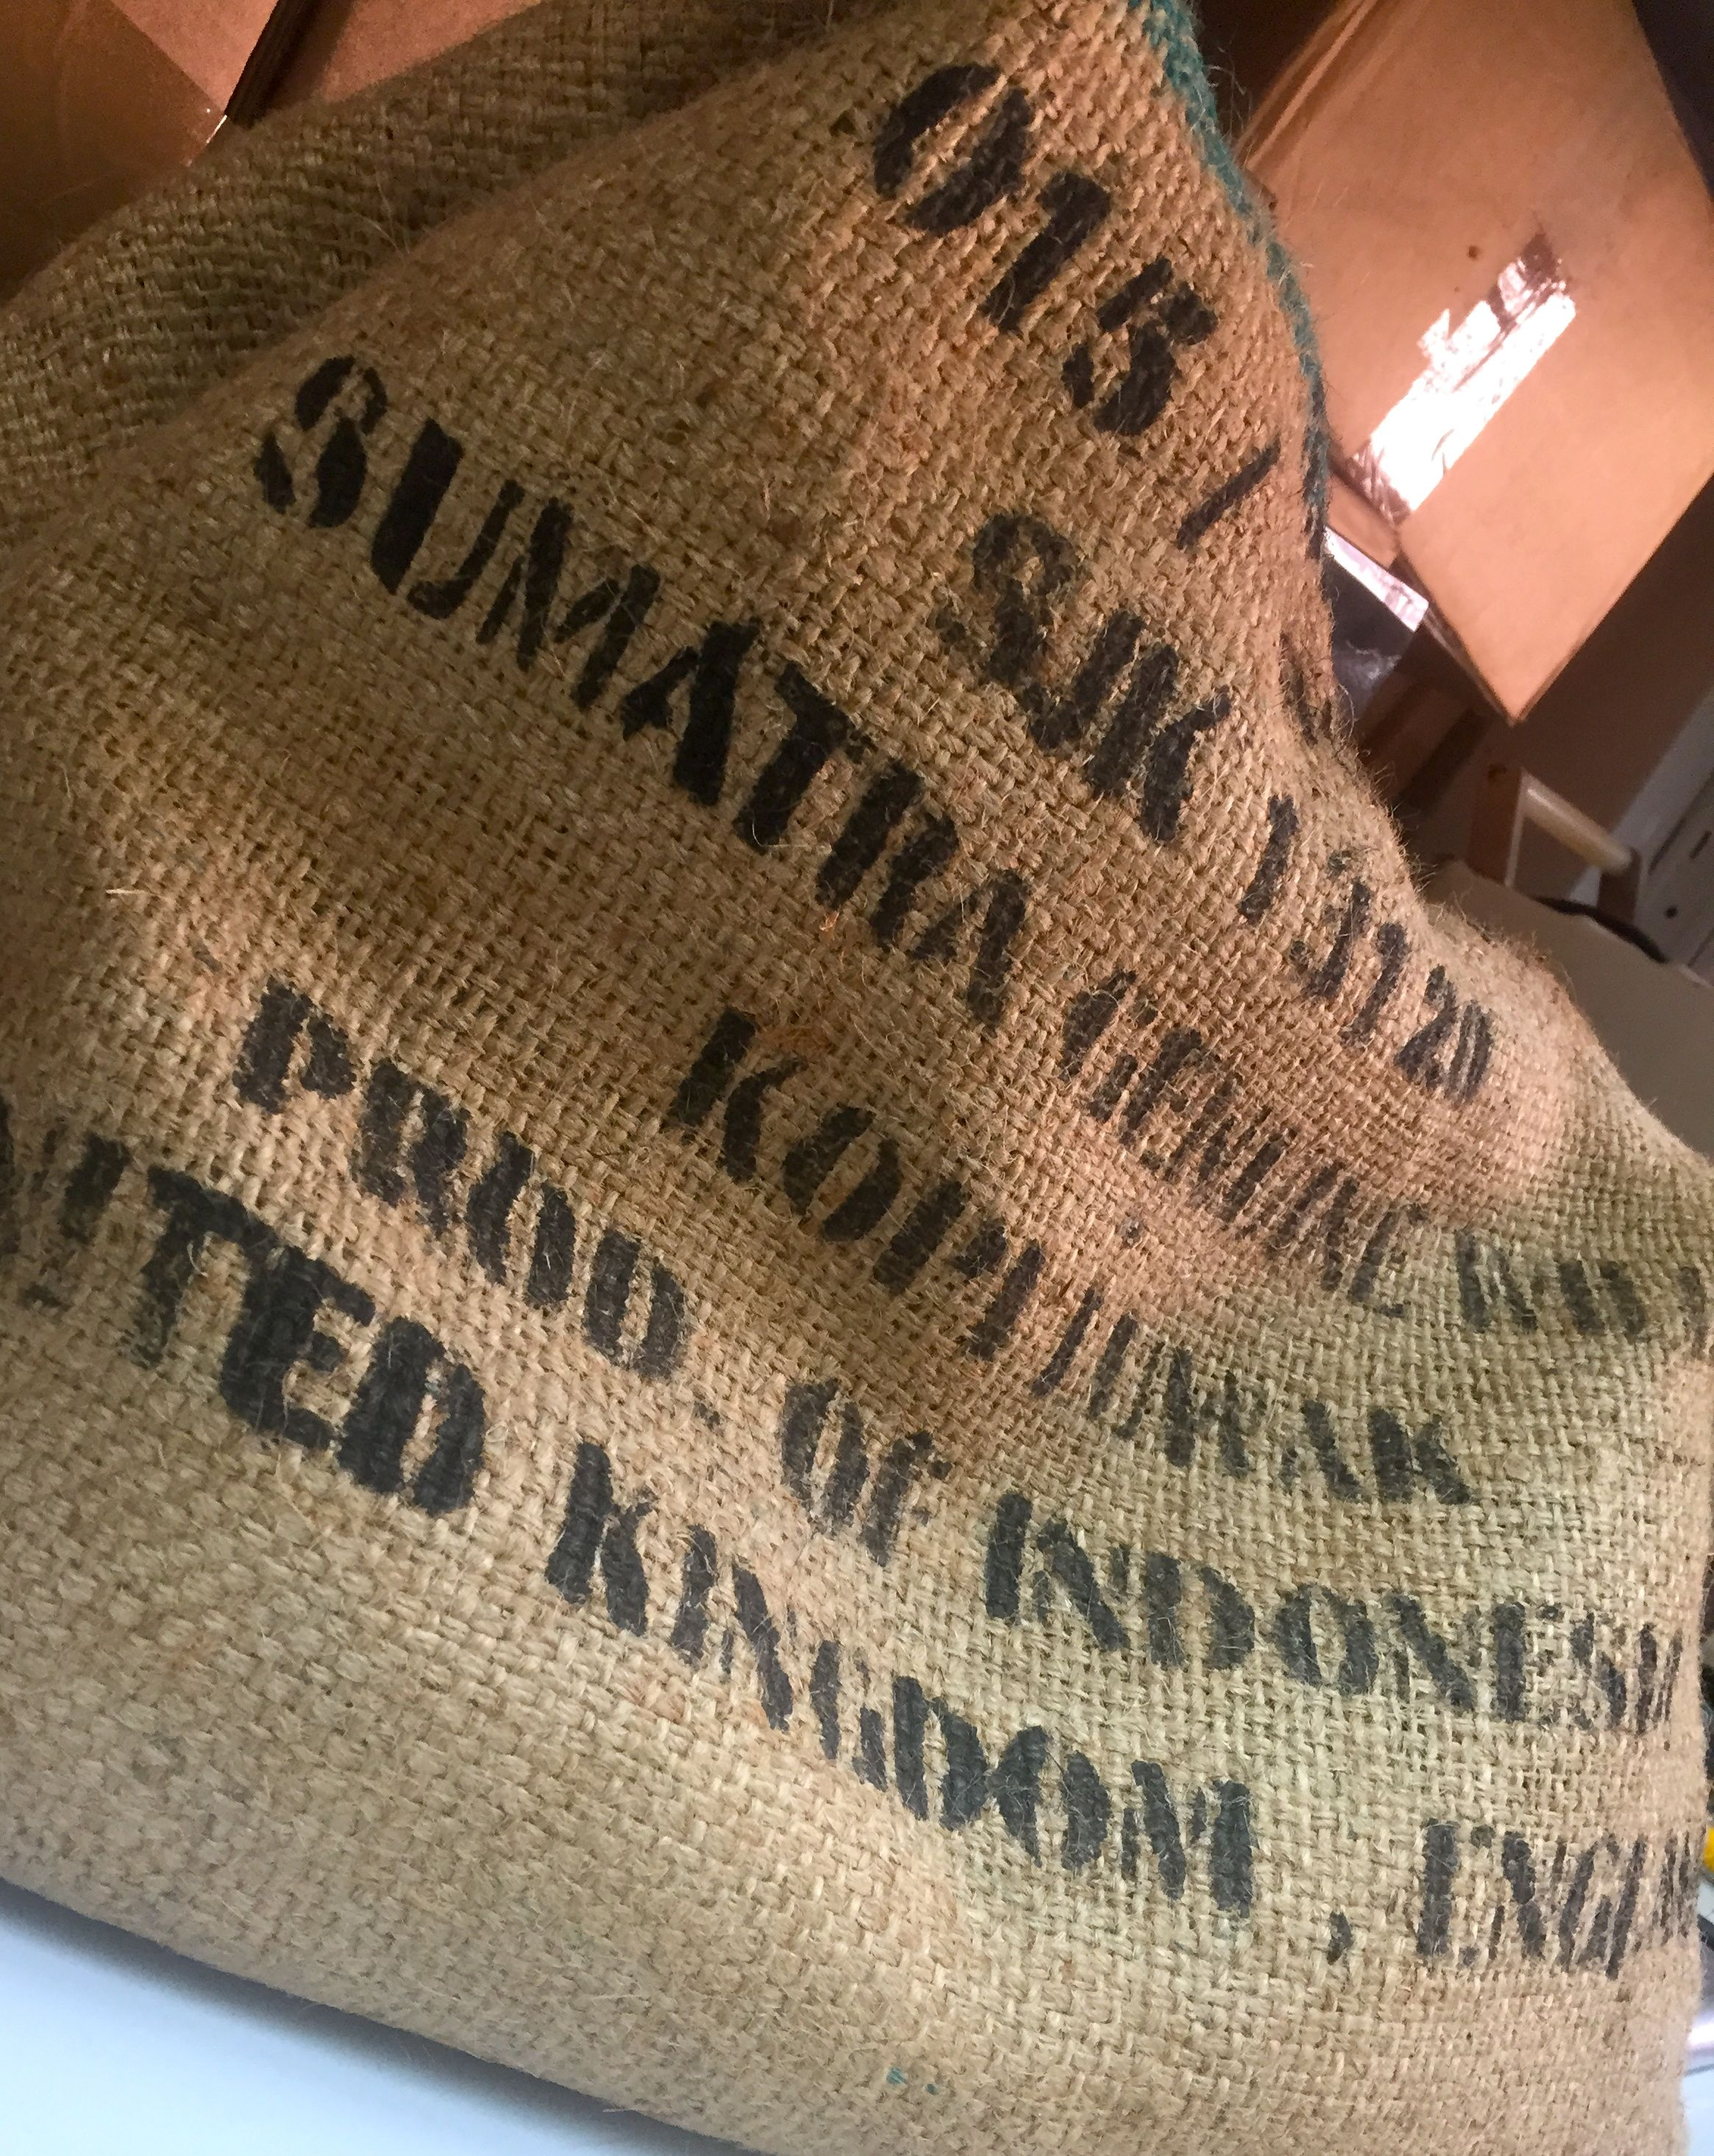 Imported green coffee beans from Indonesia. These coffee